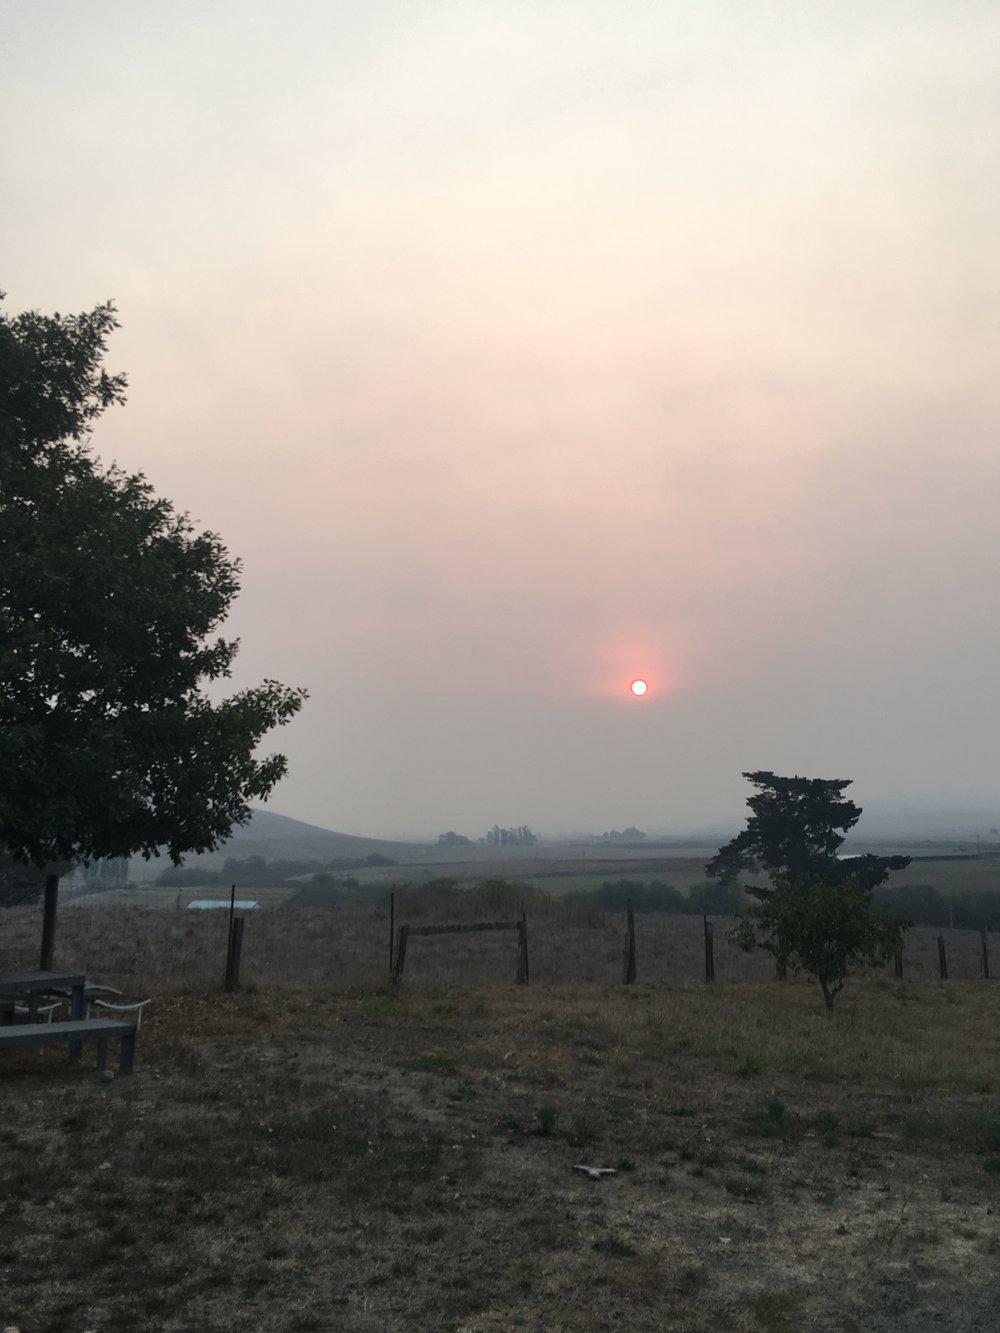 October 9, 2015 - the morning sunrise through the smoke and ash from the Santa Rosa fires